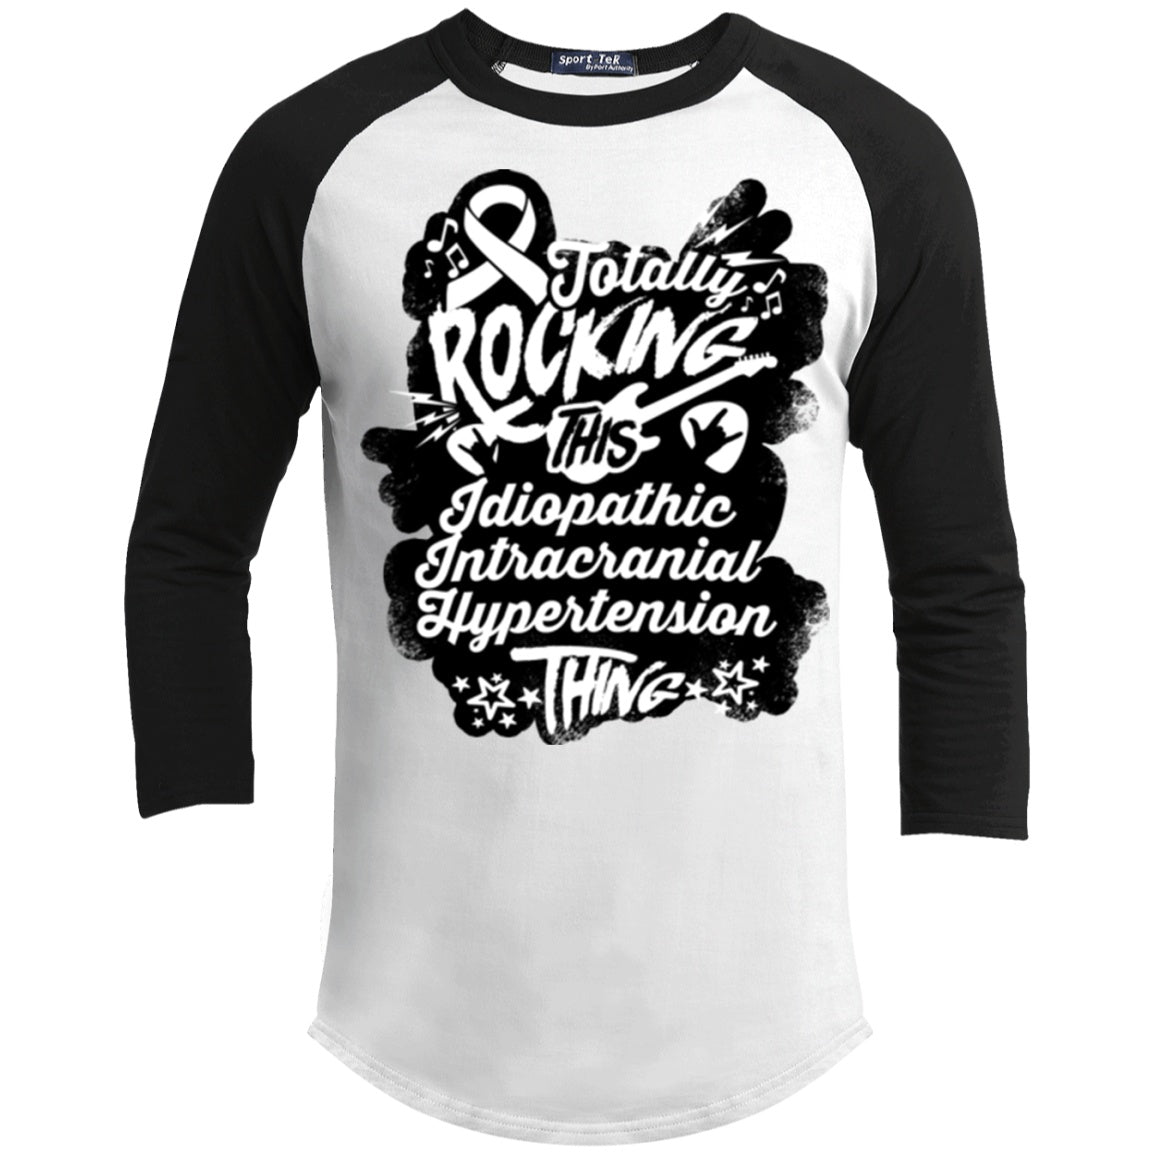 T-Shirts - Rocking Idiopathic Intracranial Hypertension Baseball Shirt